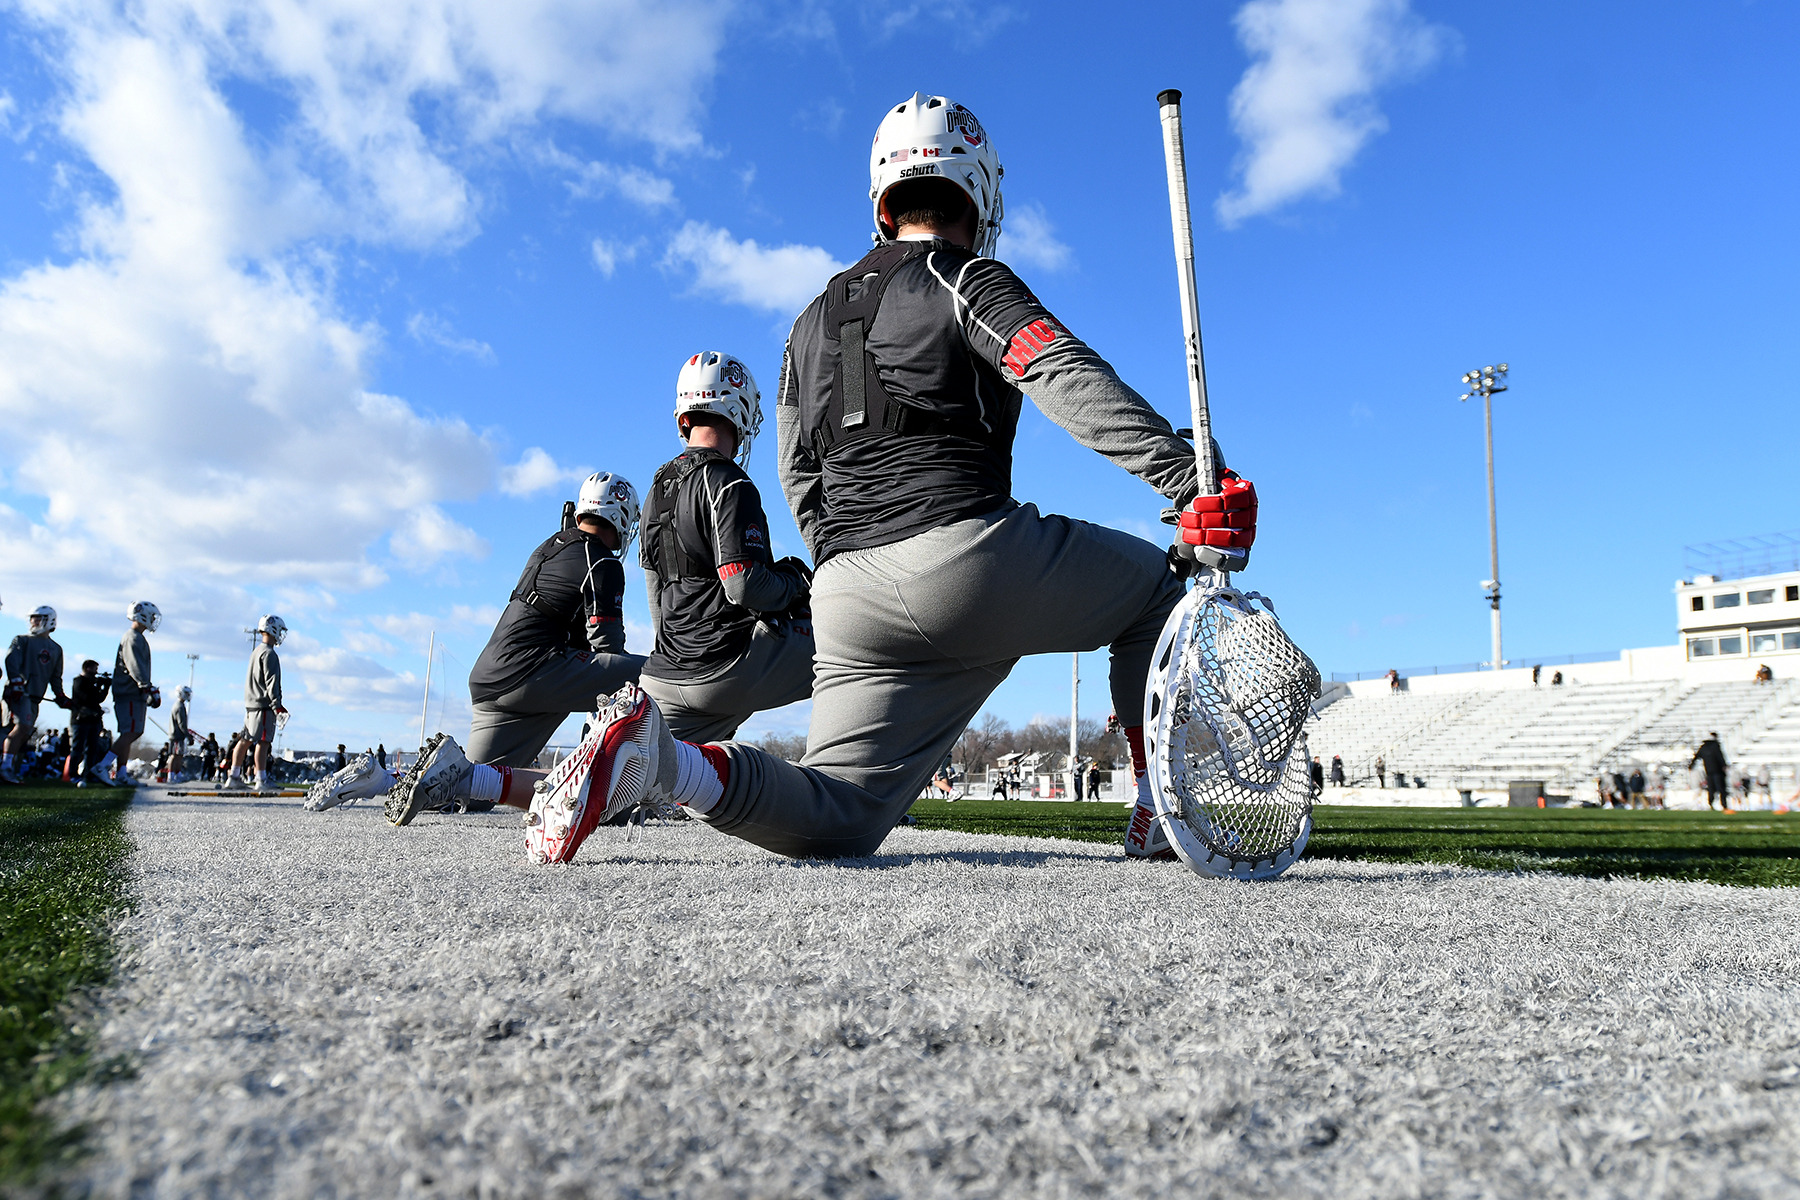 Ohio State University vs Marquette, men's lacrosse action in the Midwest Classic at Wisner Stadium in Pontiac, Michigan, Friday, March 2, 2018.